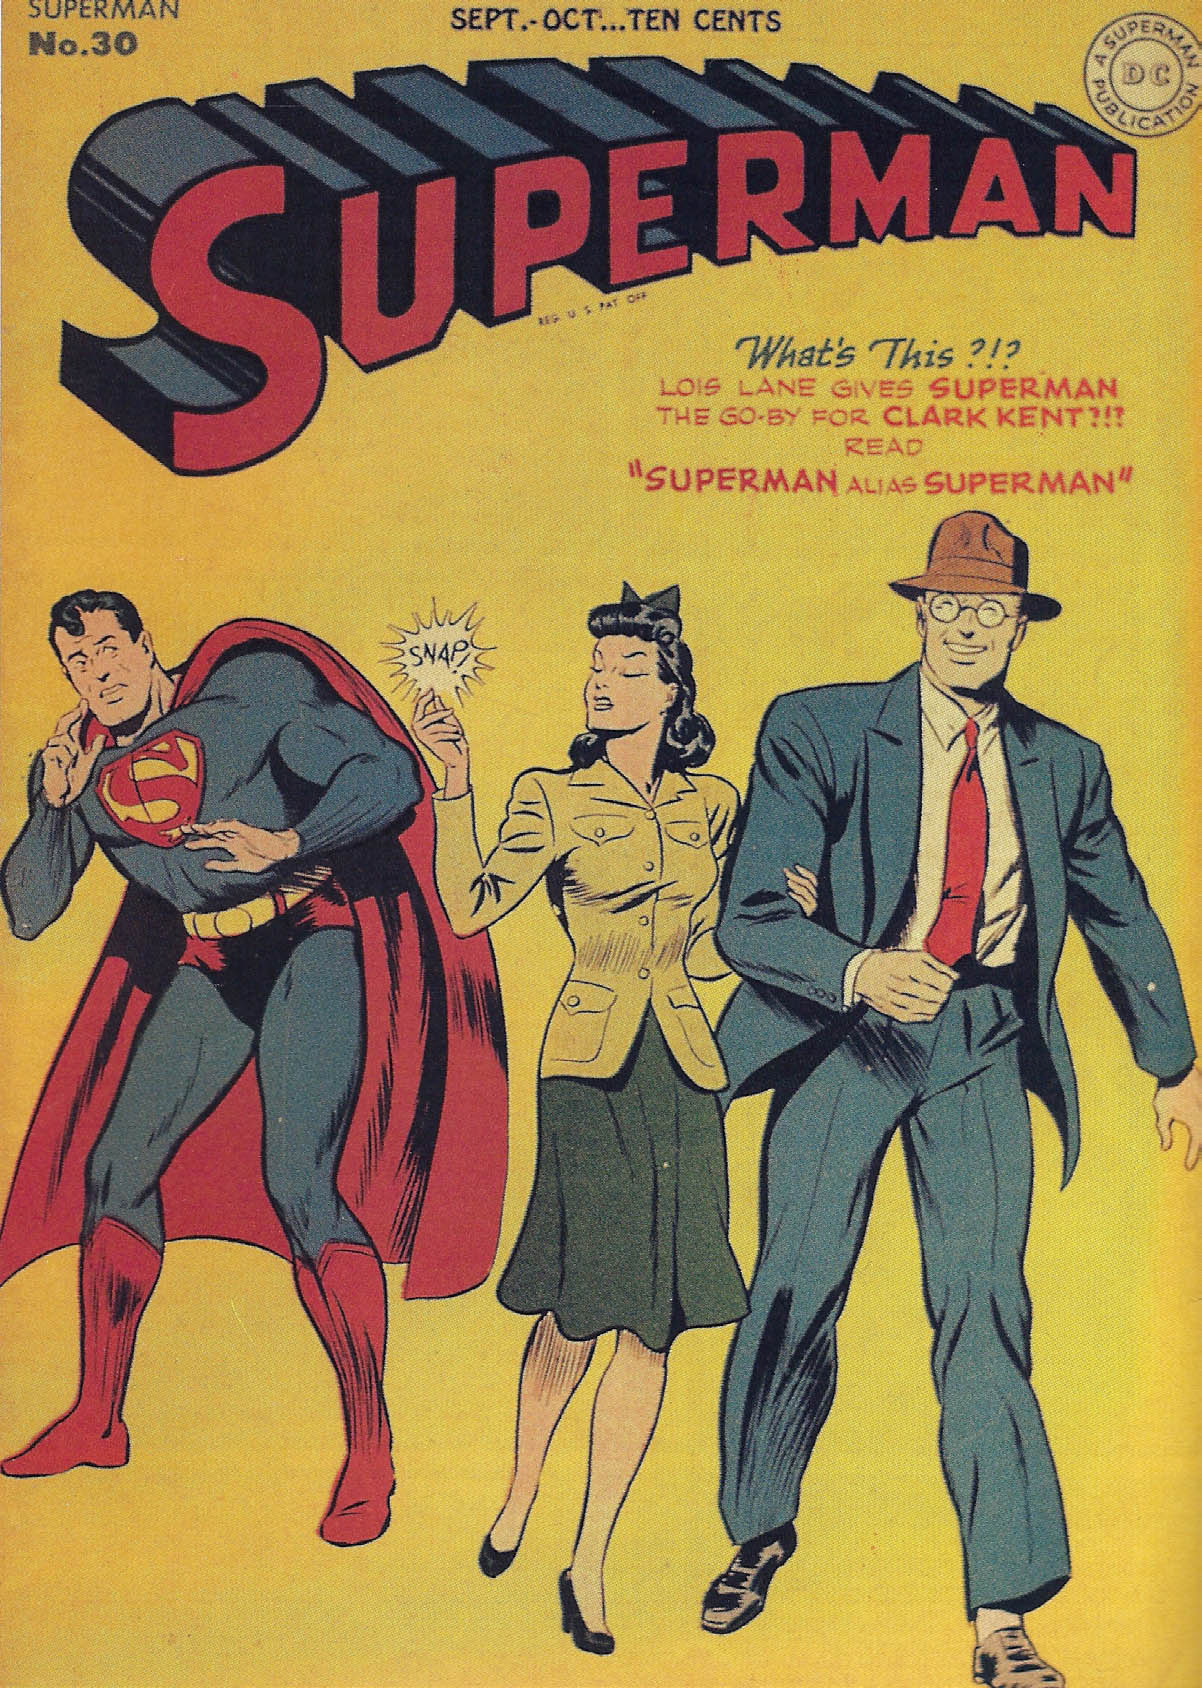 http://www.urban-comics.com/wp-content/uploads/2013/04/superman_44_cover.jpg